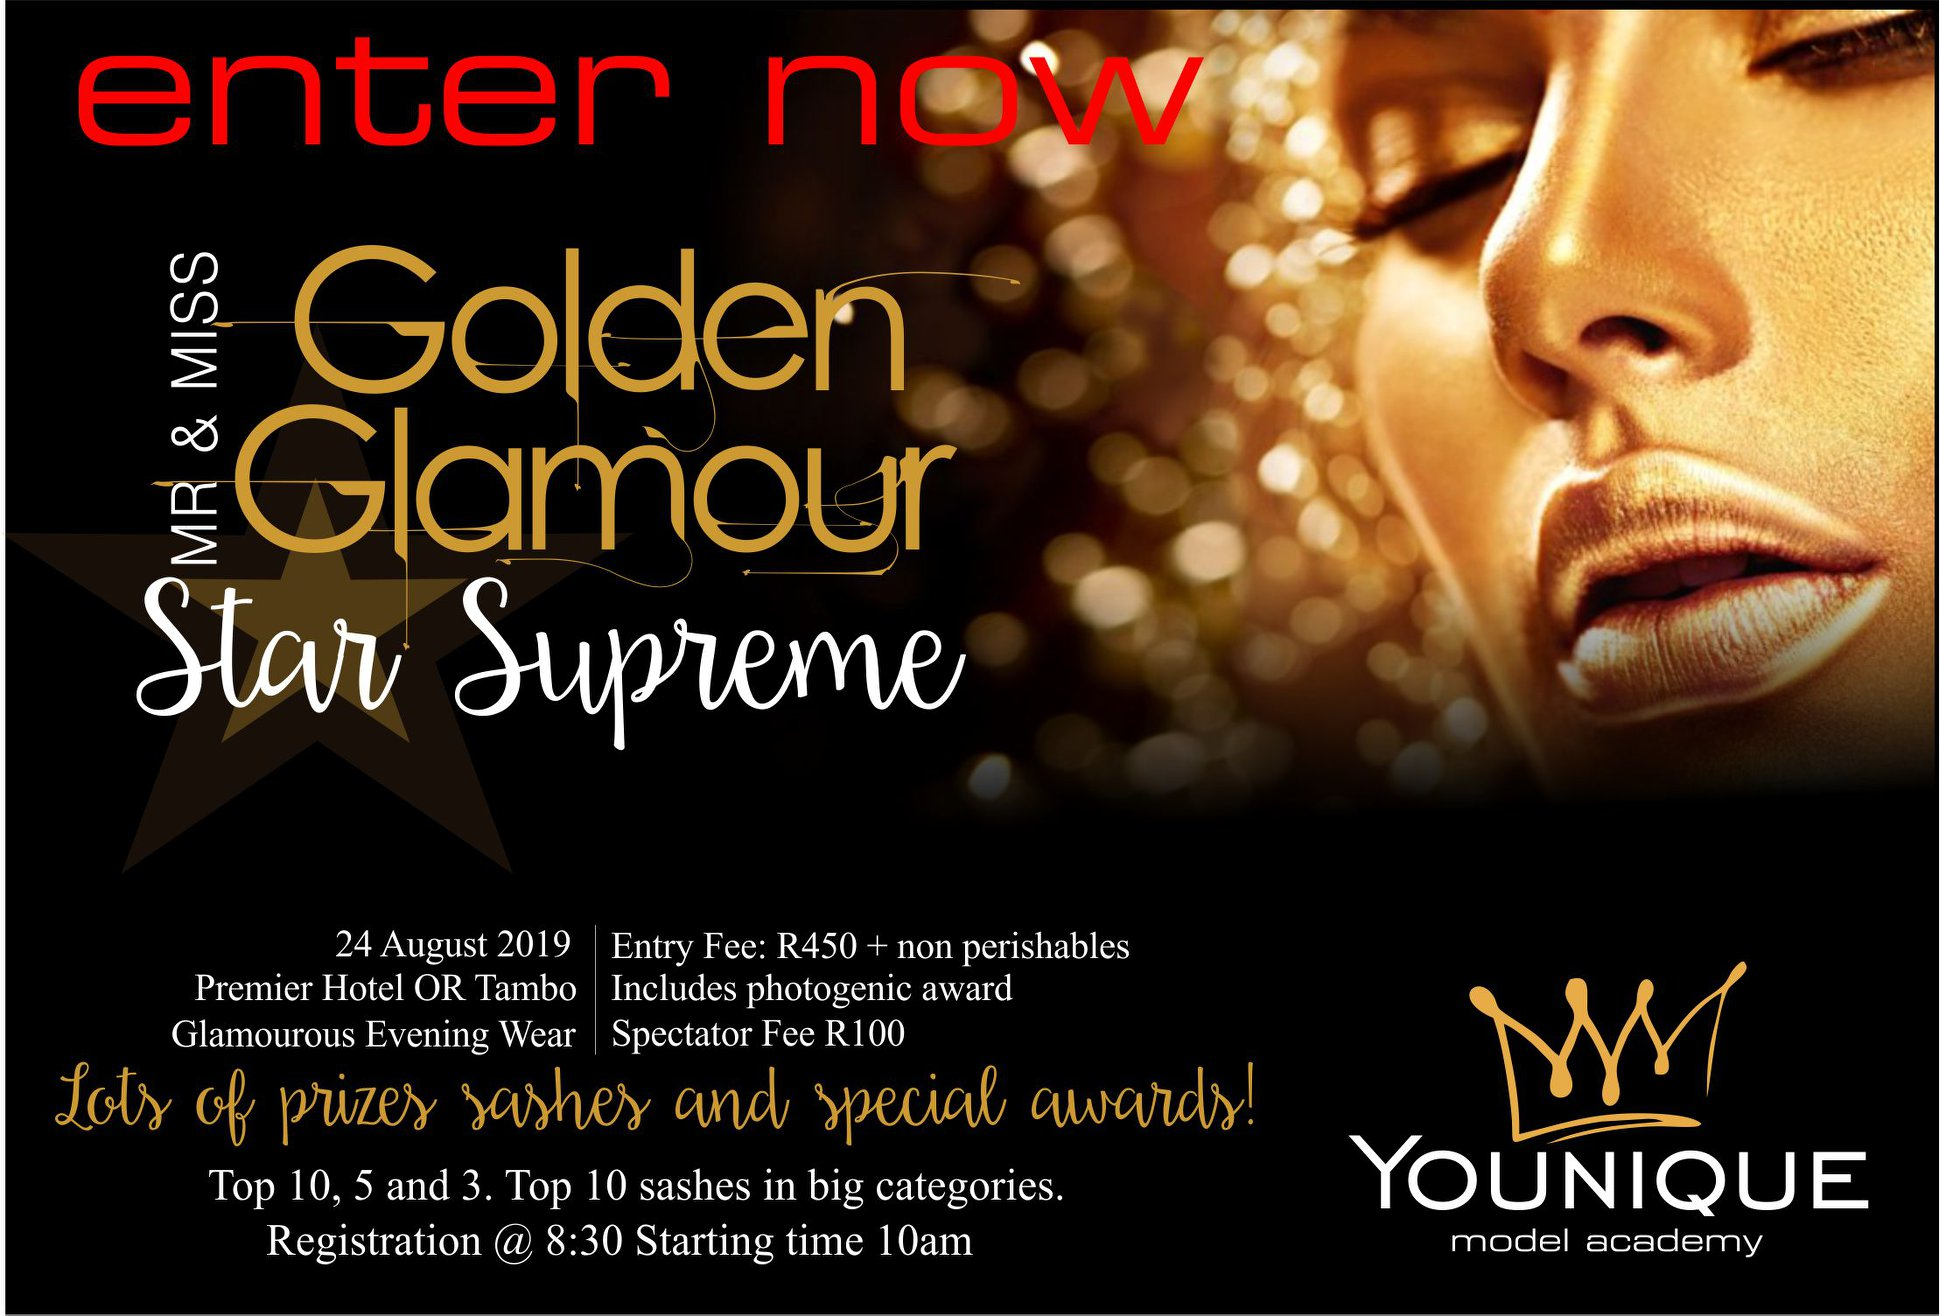 Mr and Miss Golden Glamour Star Supreme